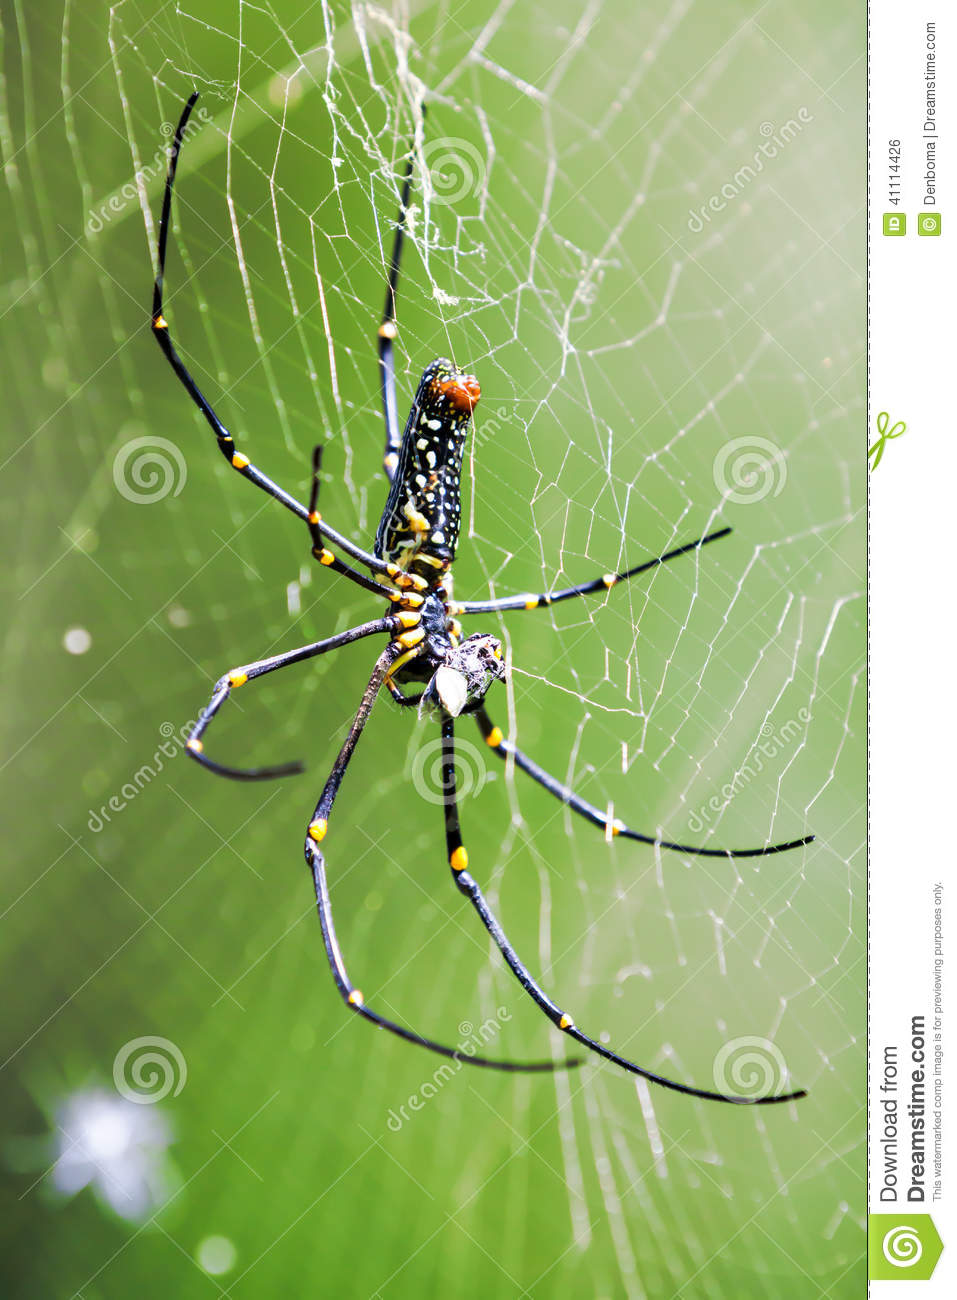 Golden Silk Orb-weaver Spider clipart #18, Download drawings